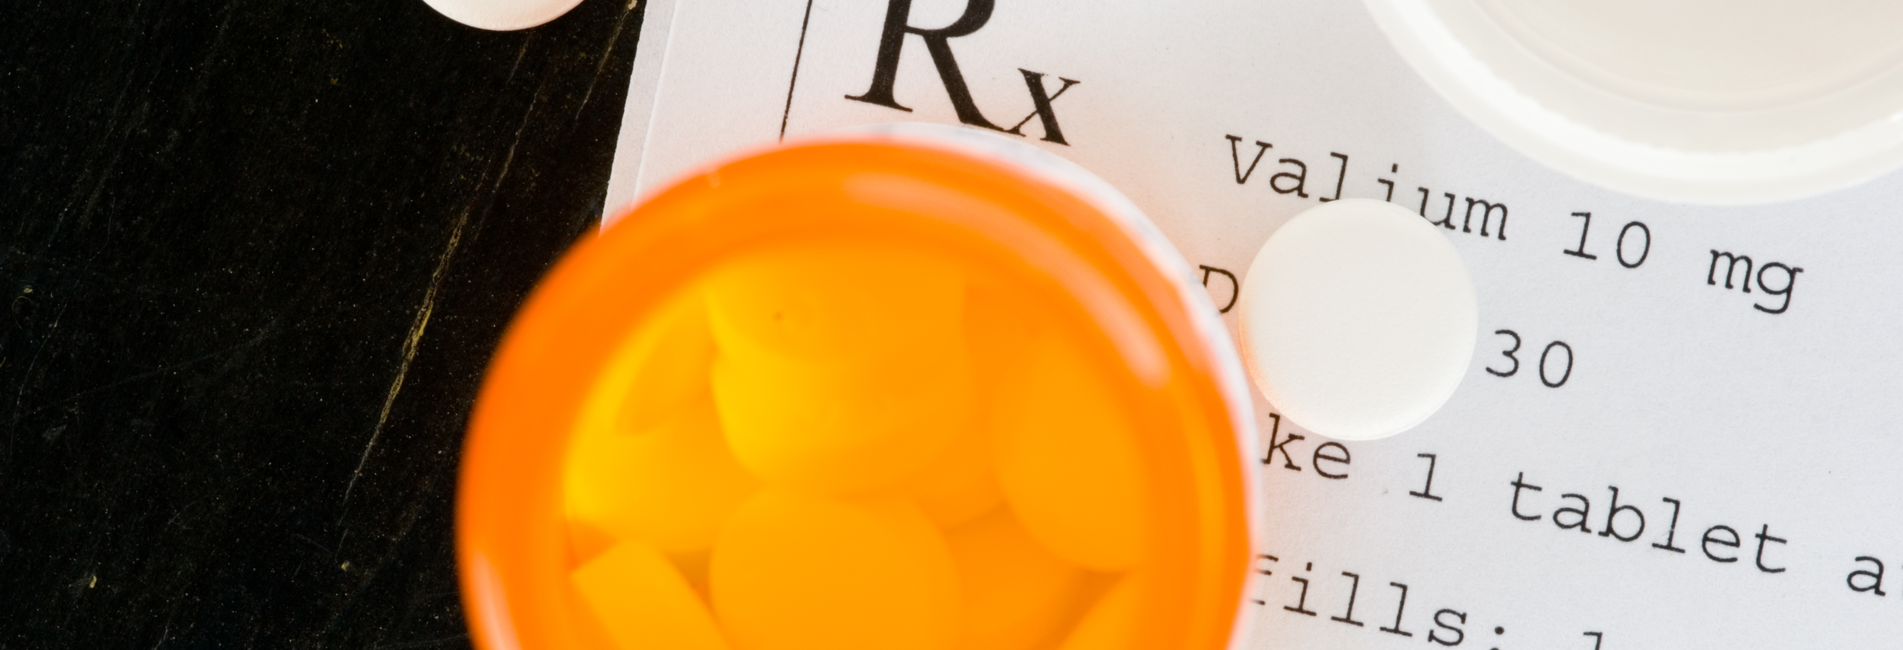 Benzodiazepine Addiction in Costa Mesa CA & Treatment - Resurgence - A image of a Valium prescription, which is a known benzodiazepine and can lead to benzodiazepine addiction in Costa Mesa CA.